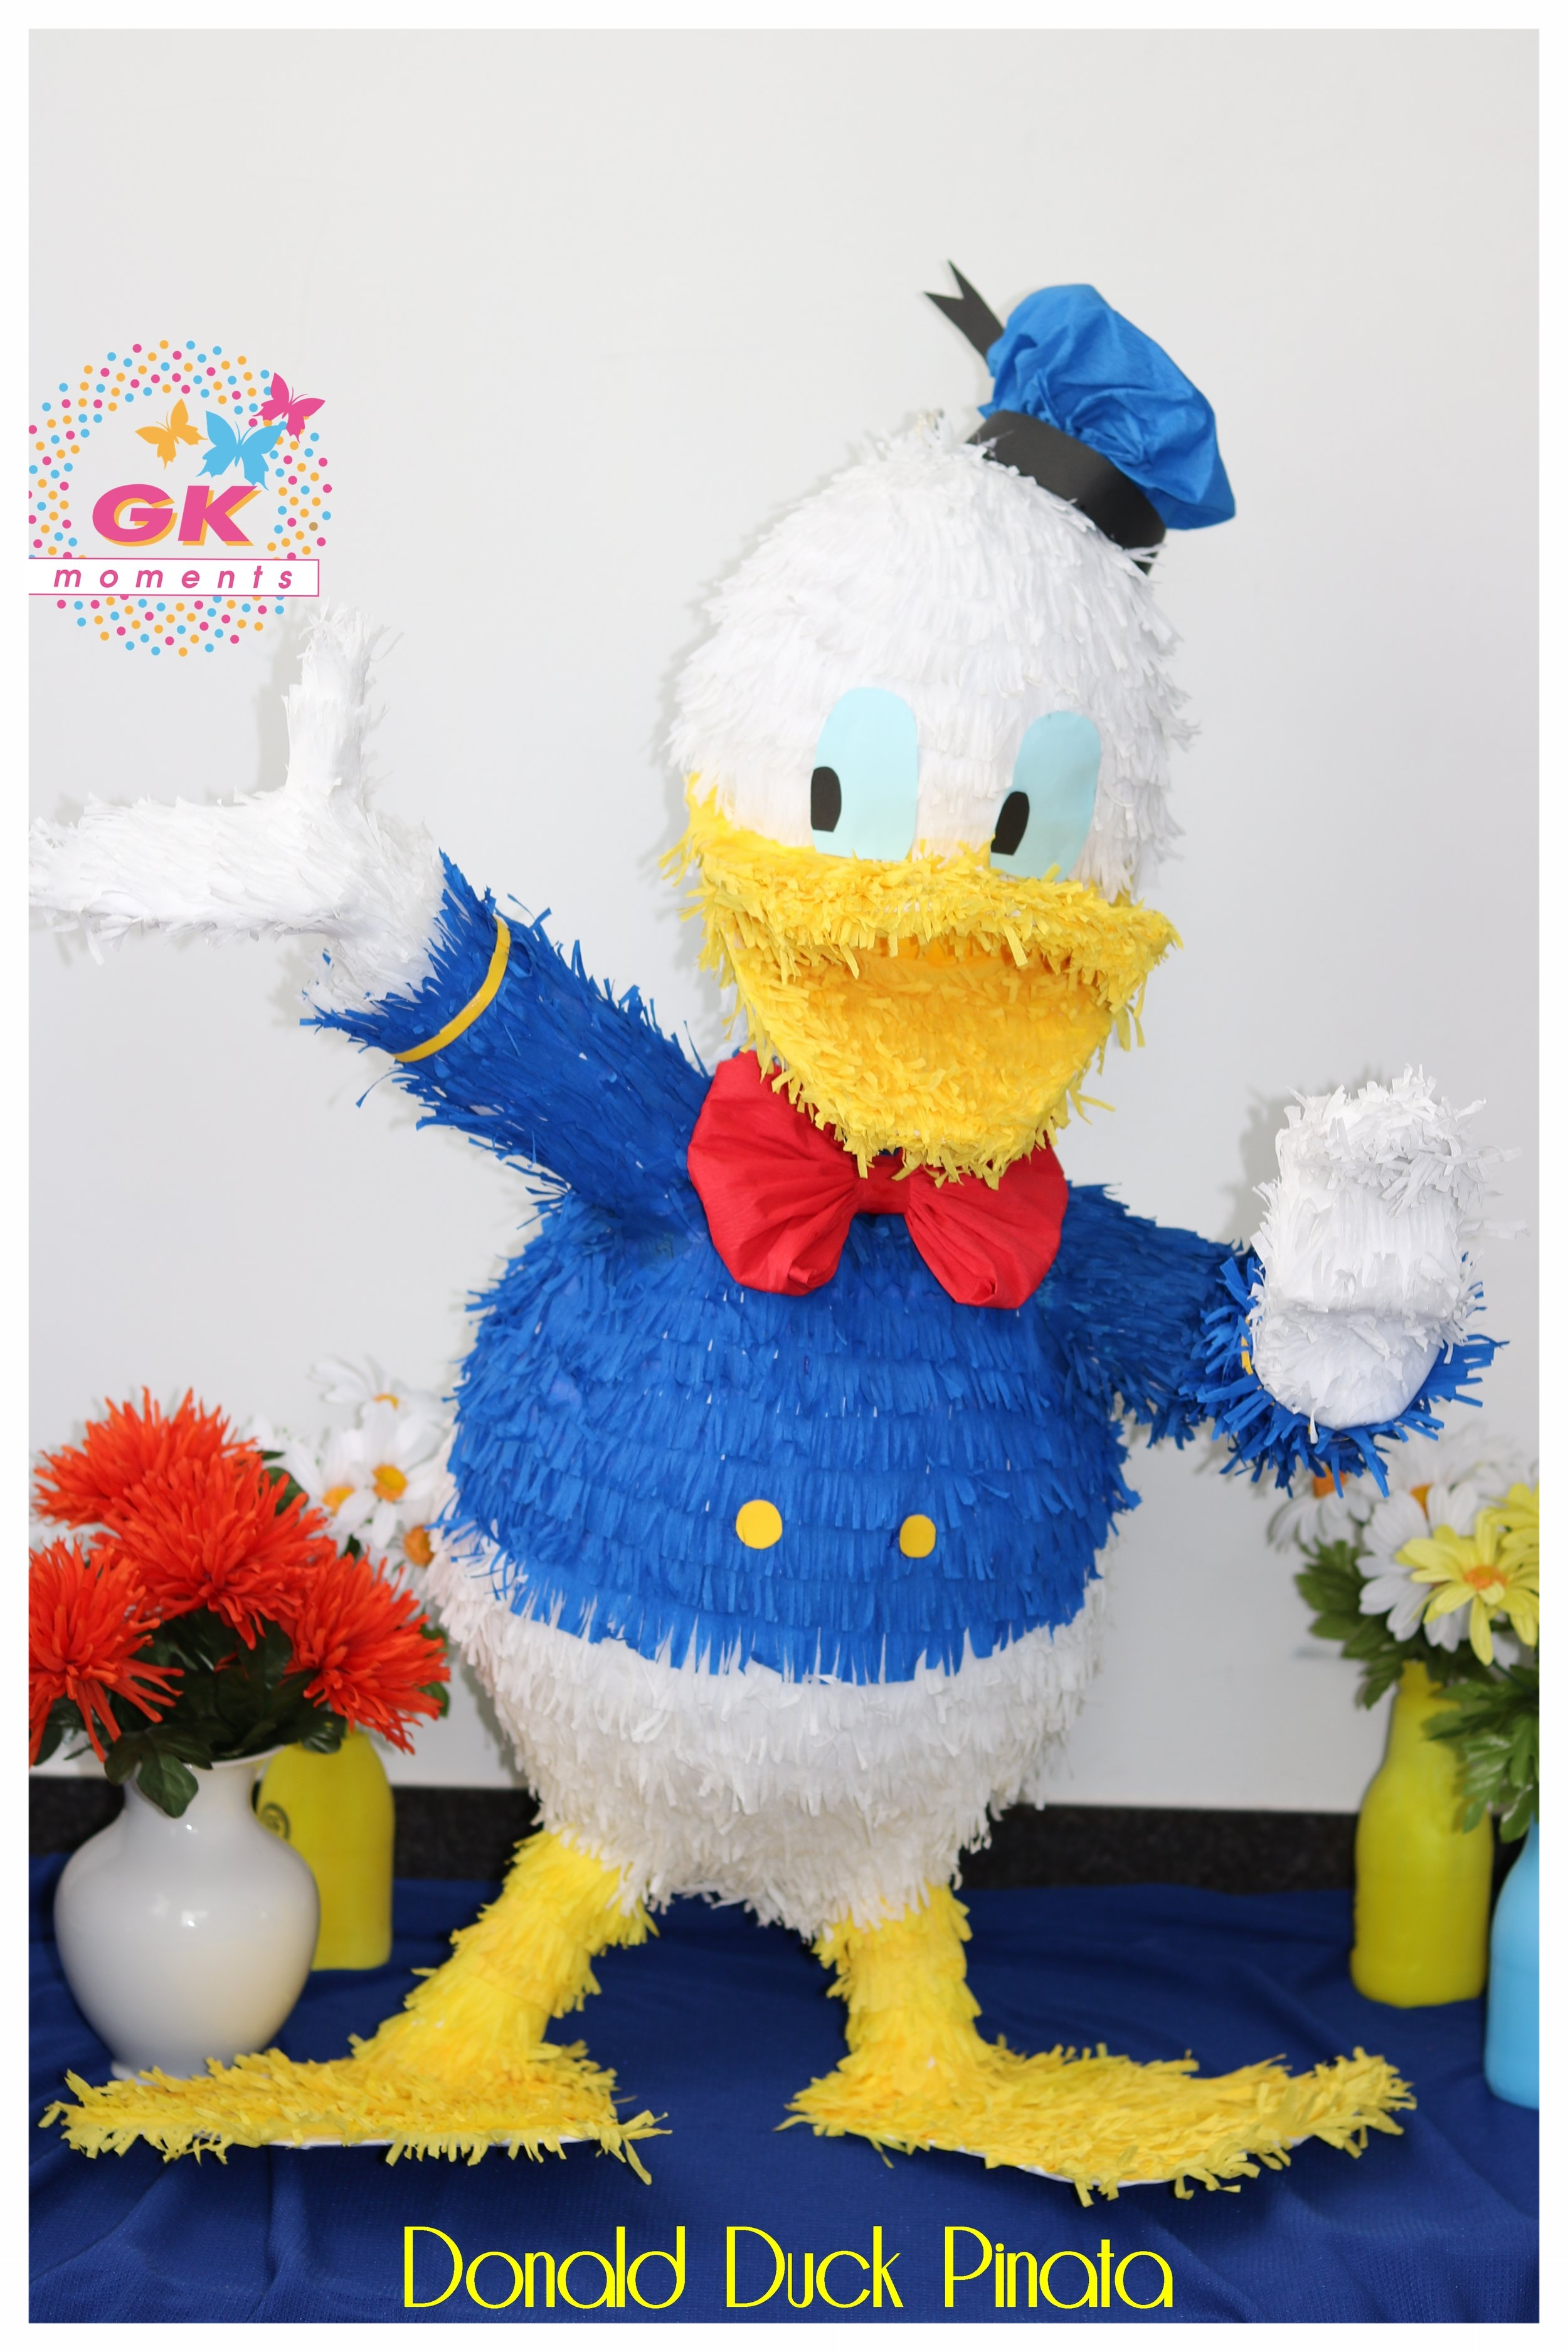 Donald Duck Pinata by GK Moments